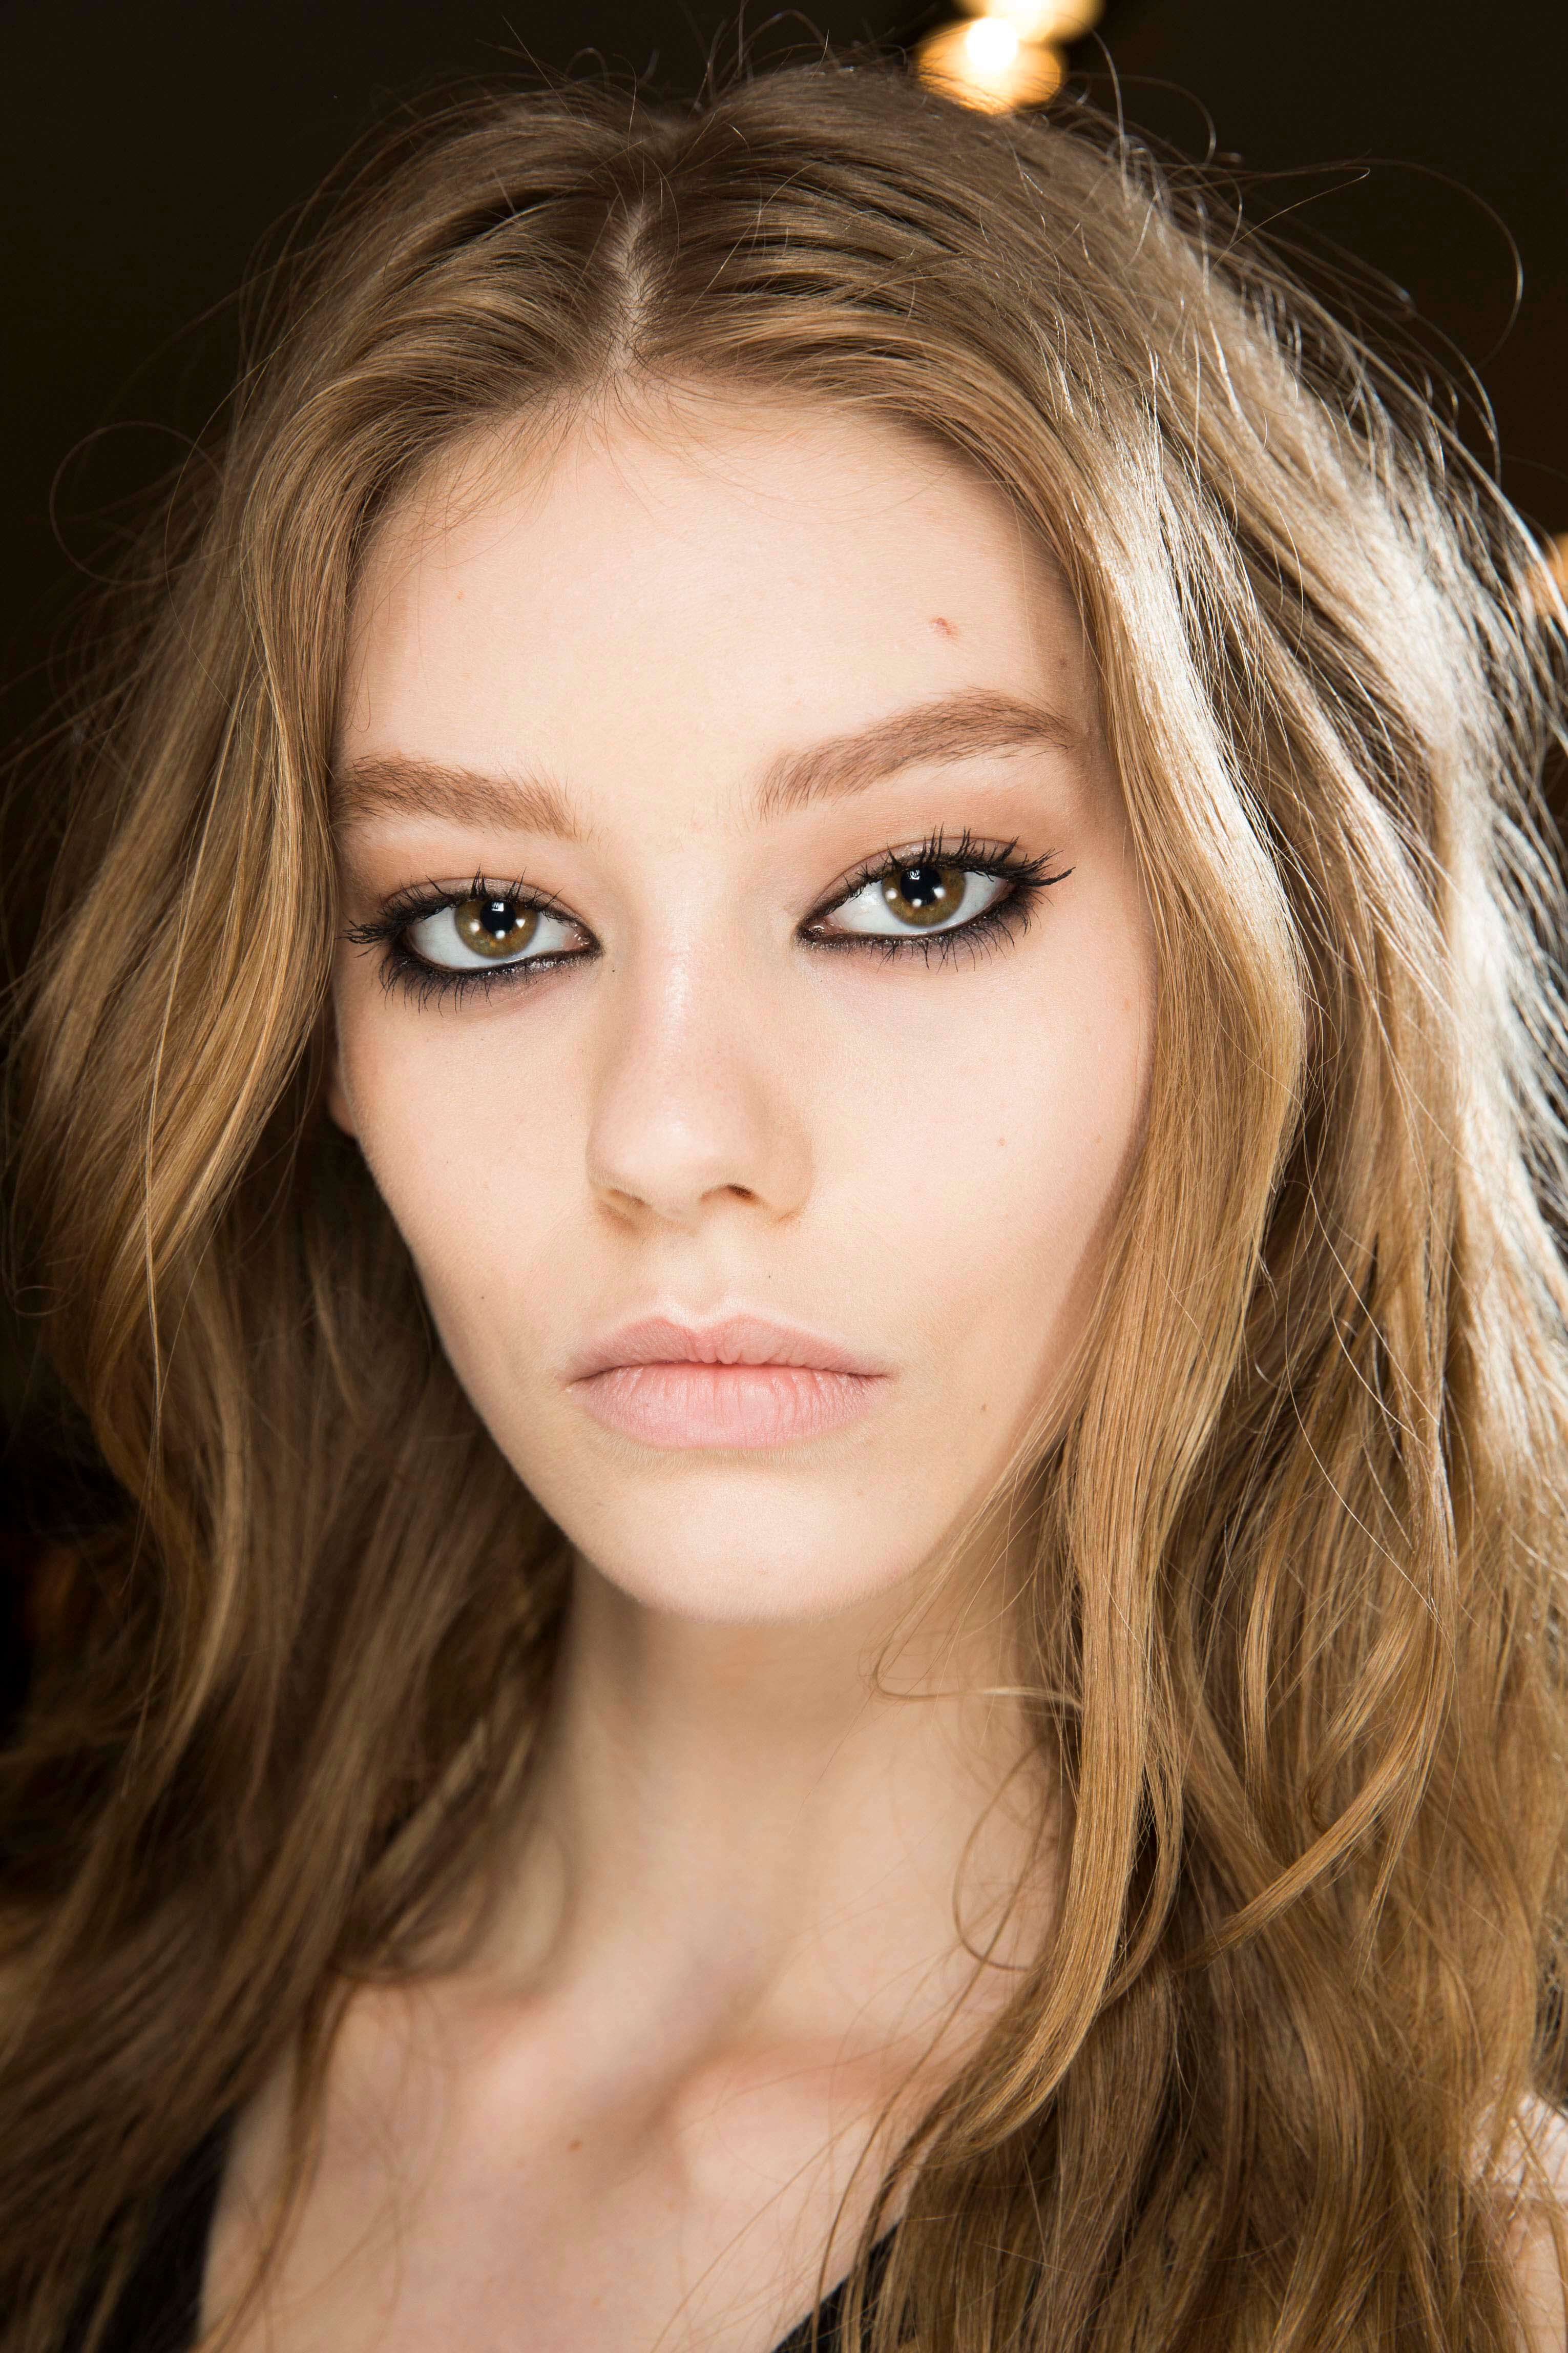 Shades of blonde hair: Woman with dark blonde bronde wavy hair wearing heavy eye makeup.